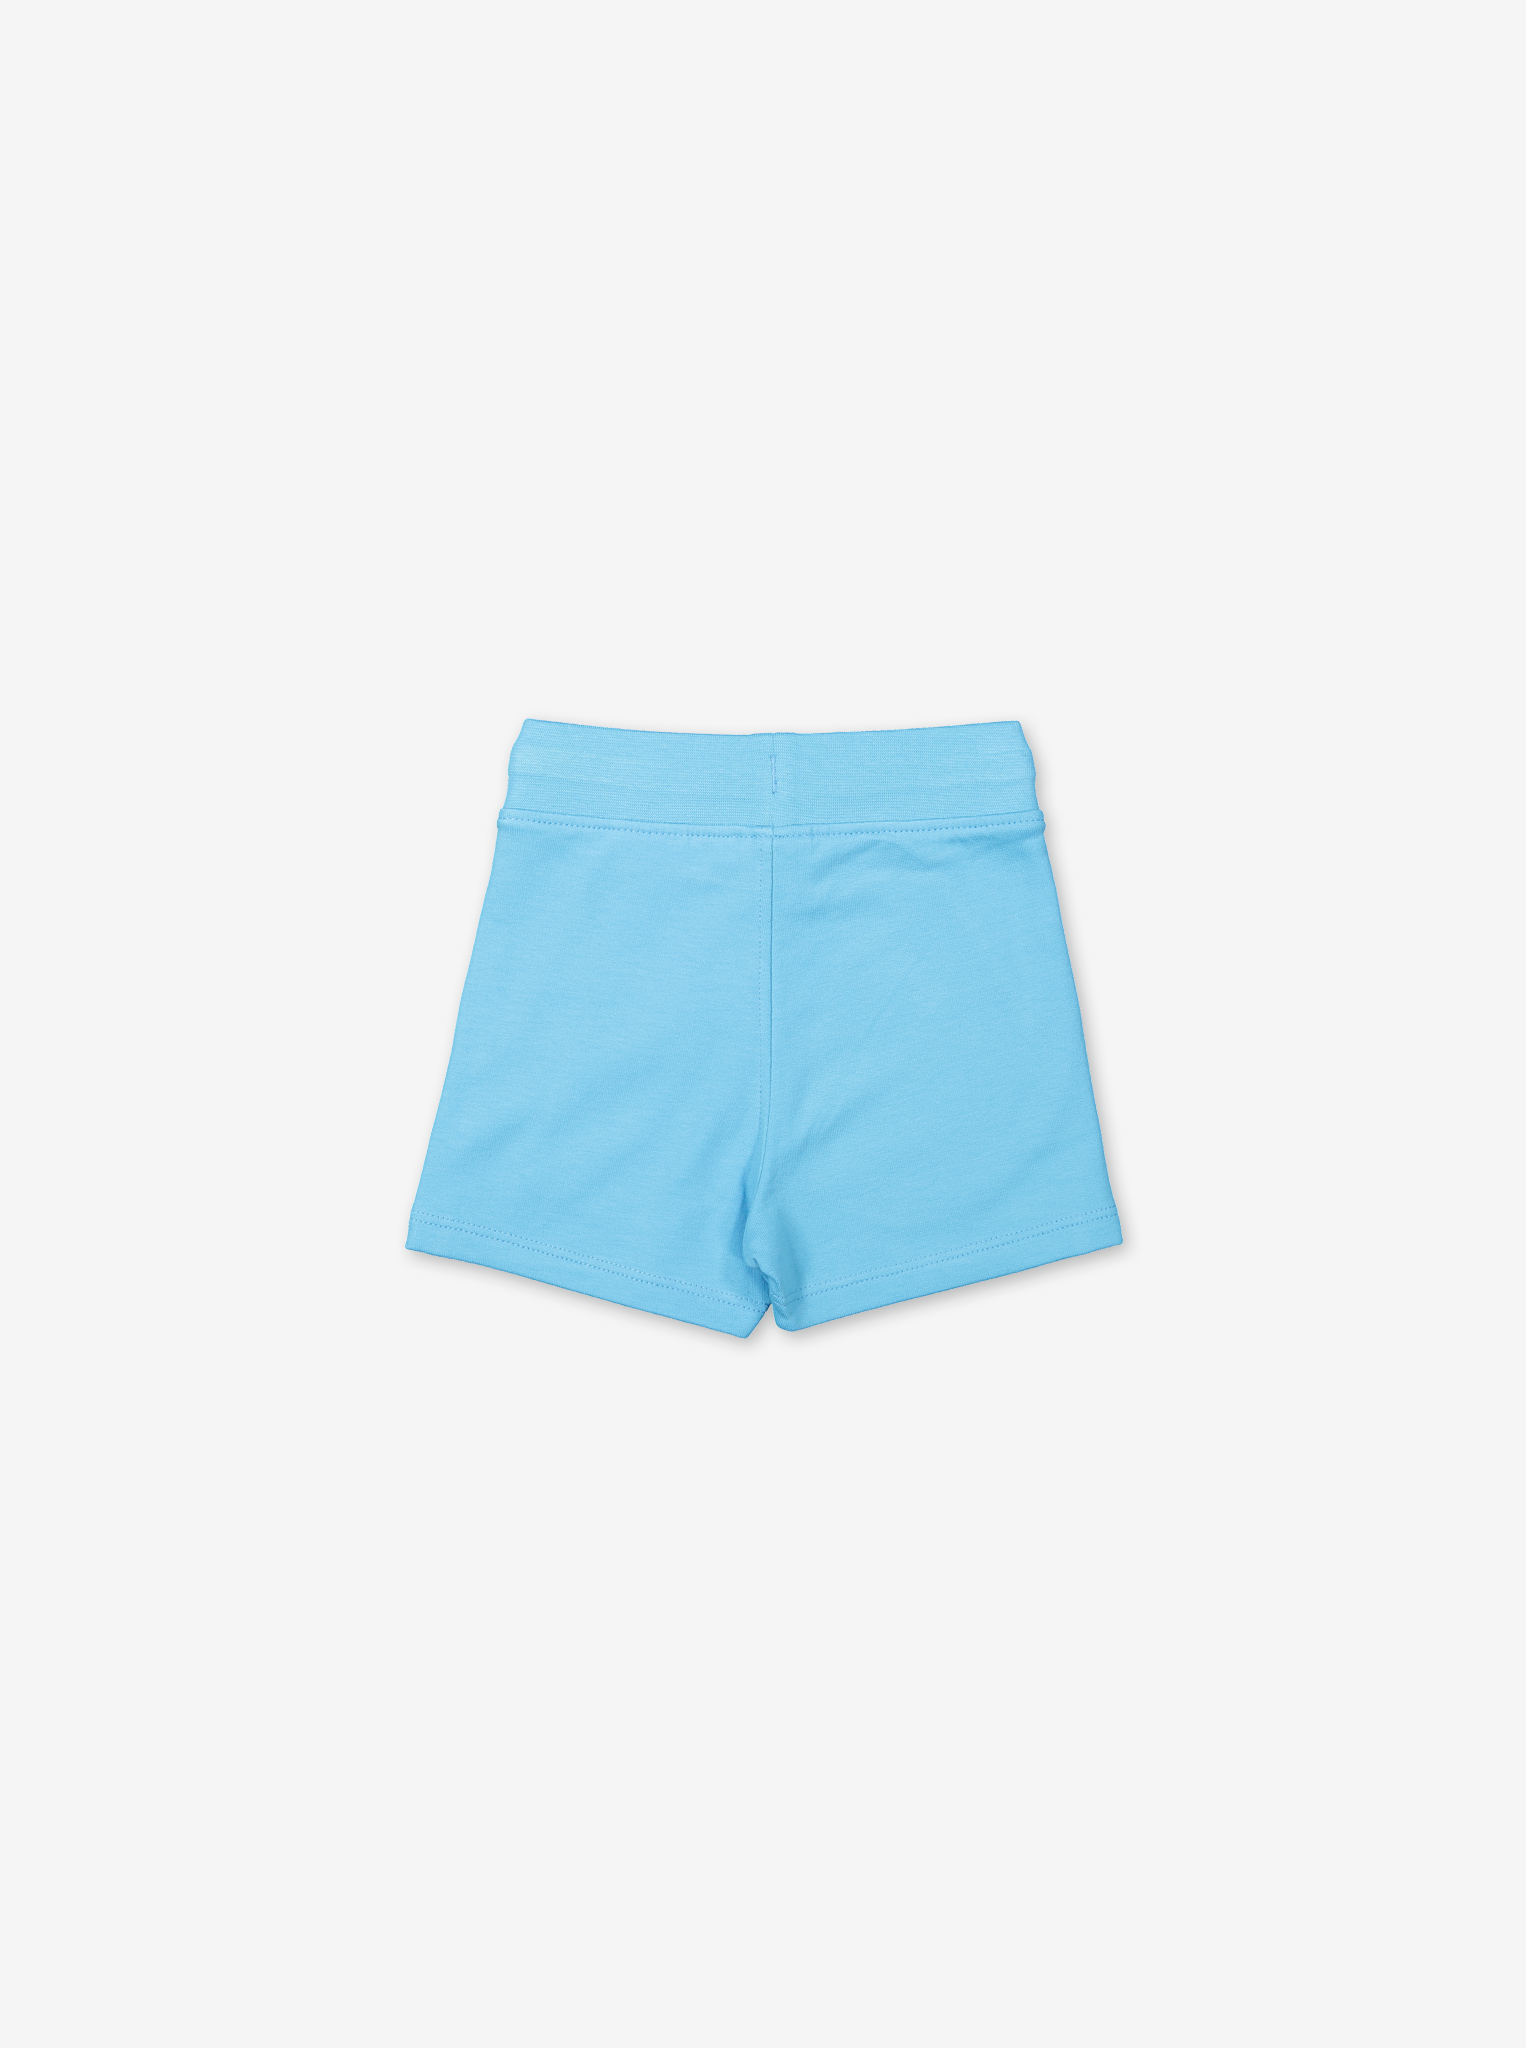 Soft Cotton Baby Shorts-Unisex-0-1y-Turquoise